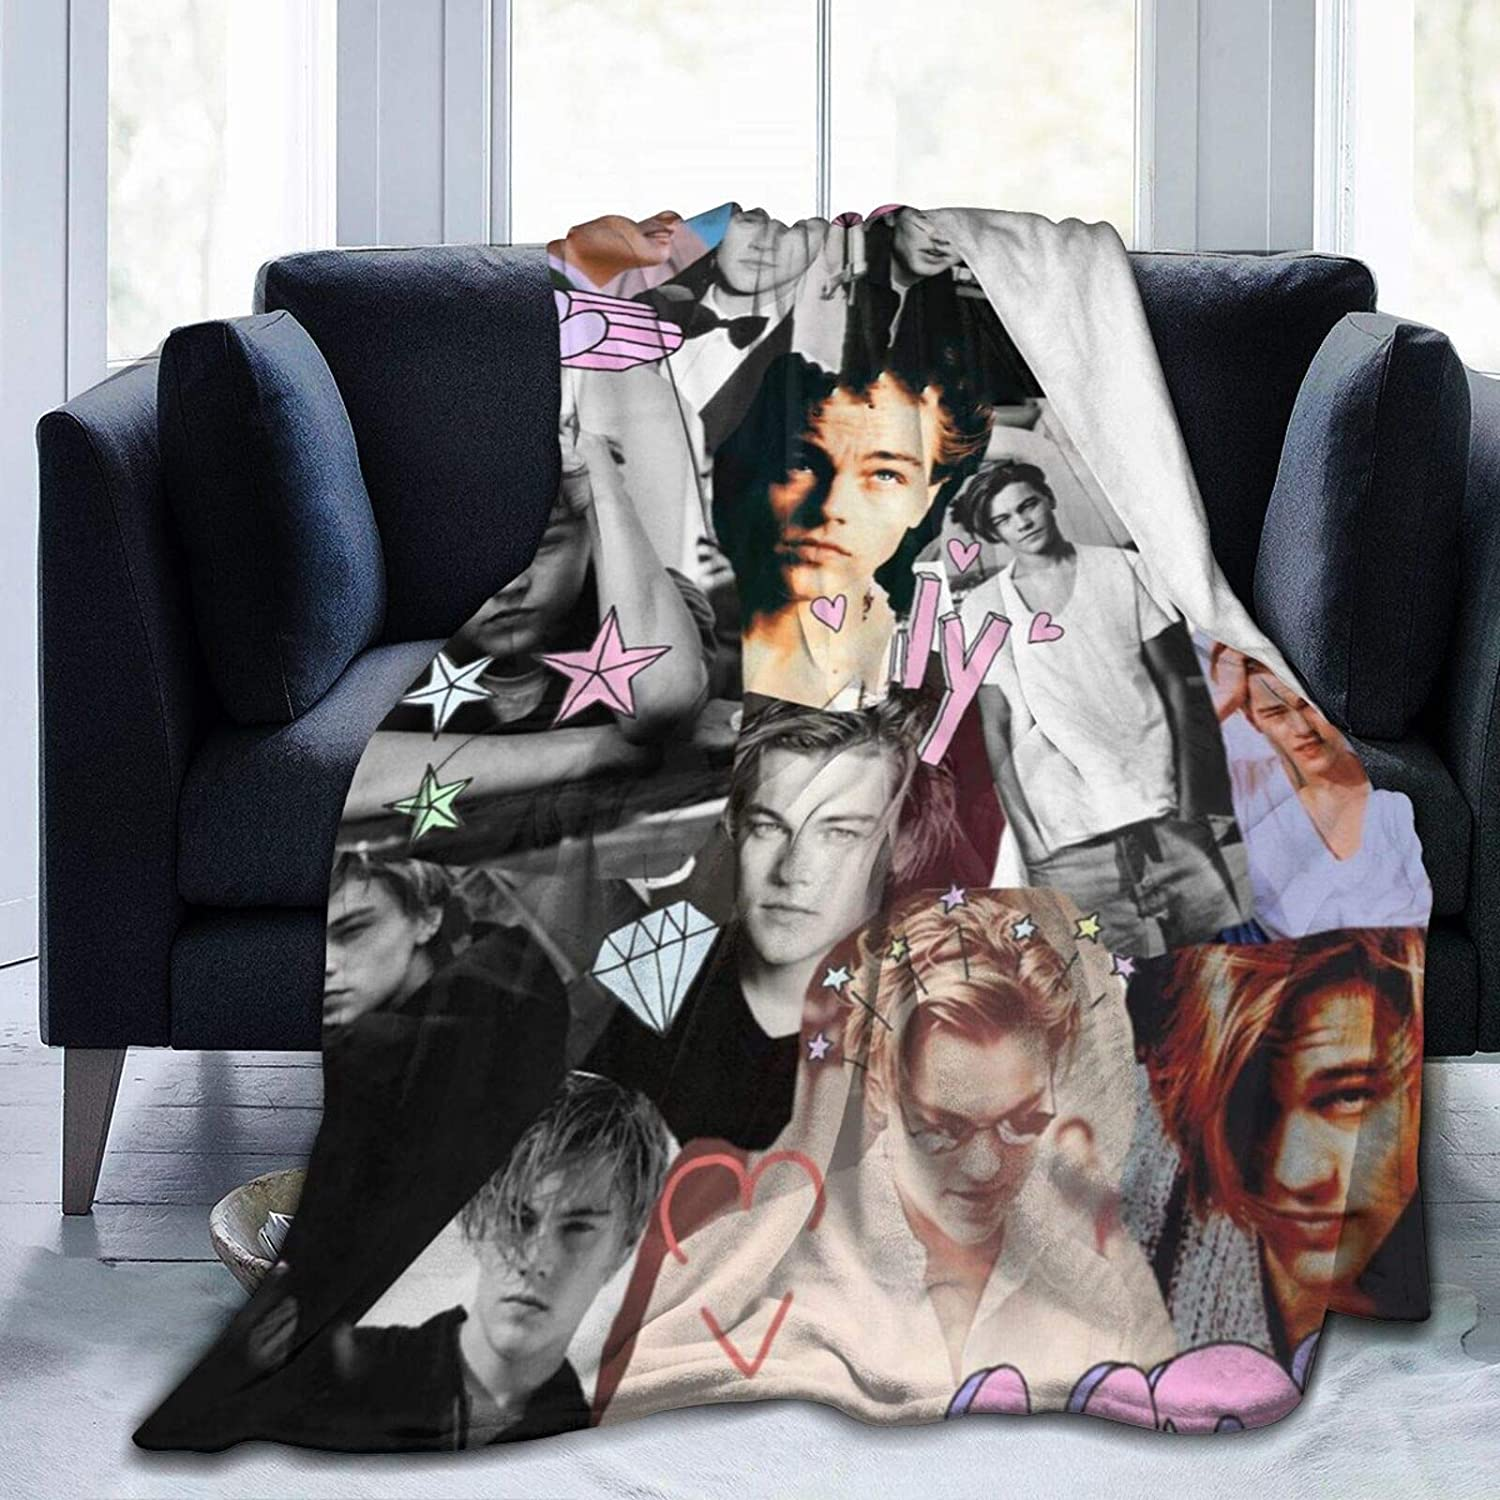 Throw Blanket Leonardo Dicaprio Young Ligh Warm Super All stores are sold service Cheap Soft